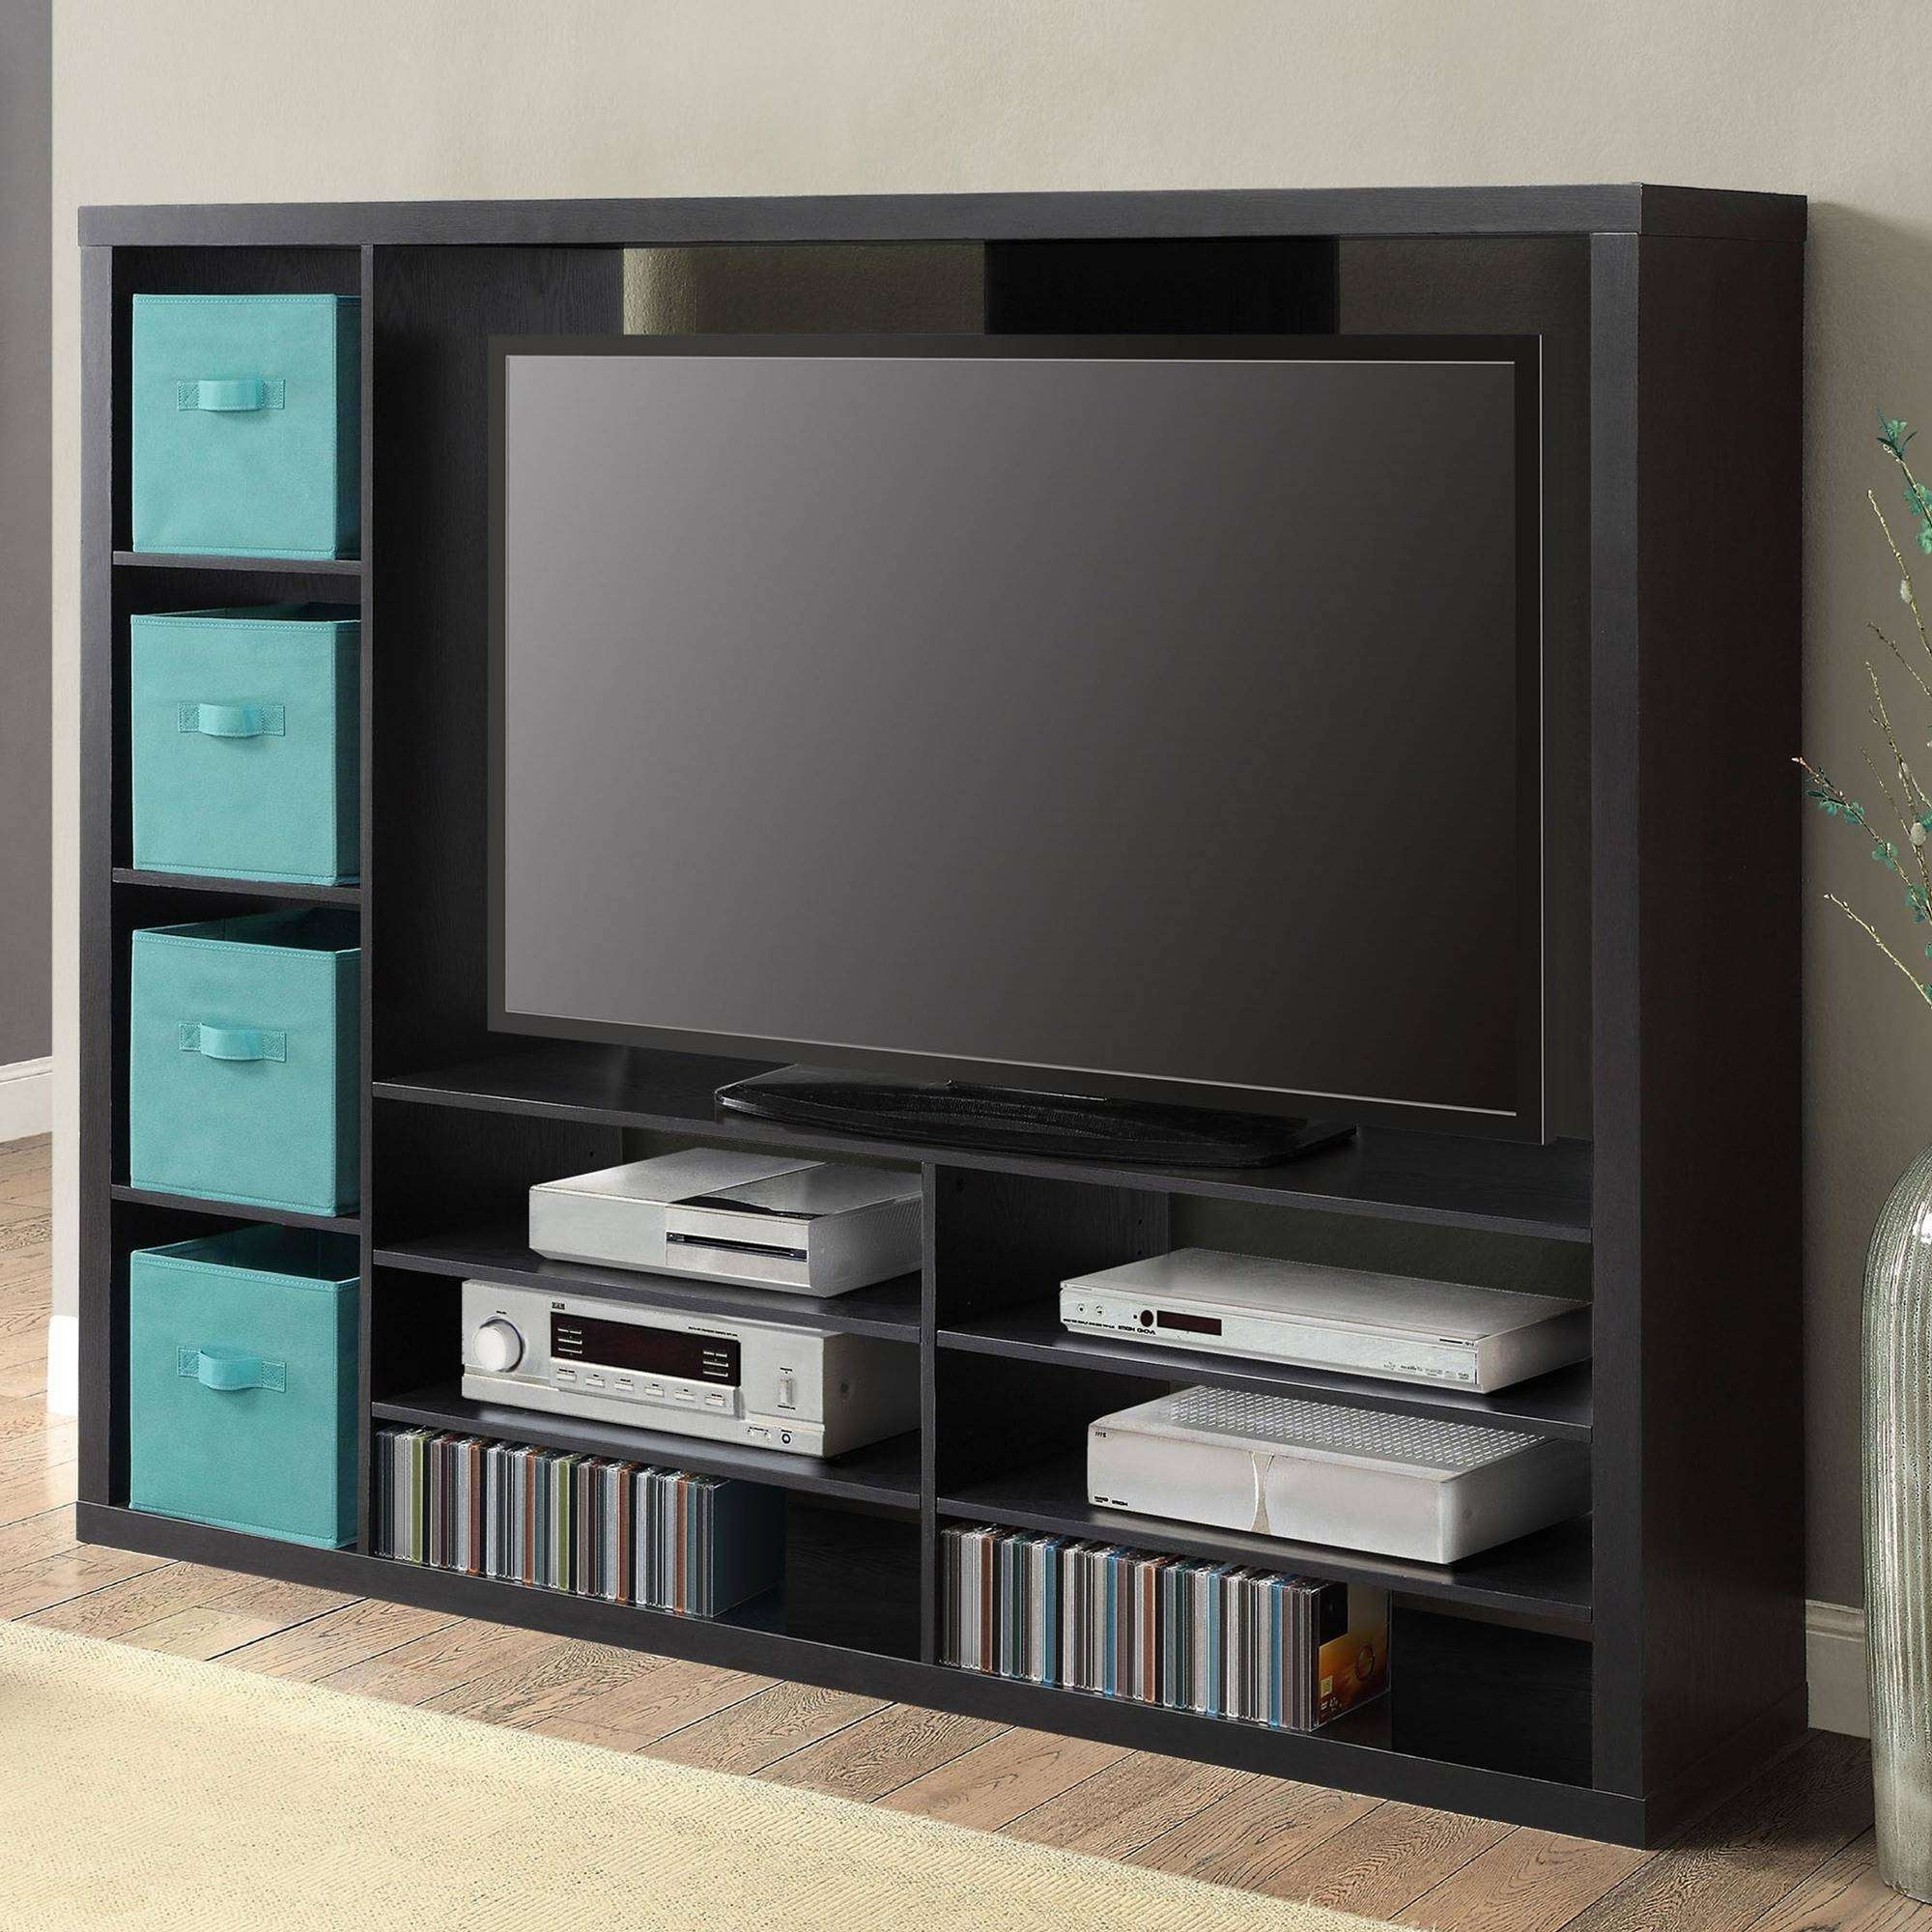 View Gallery of Entertainment Center Tv Stands Showing 2 of 15 s